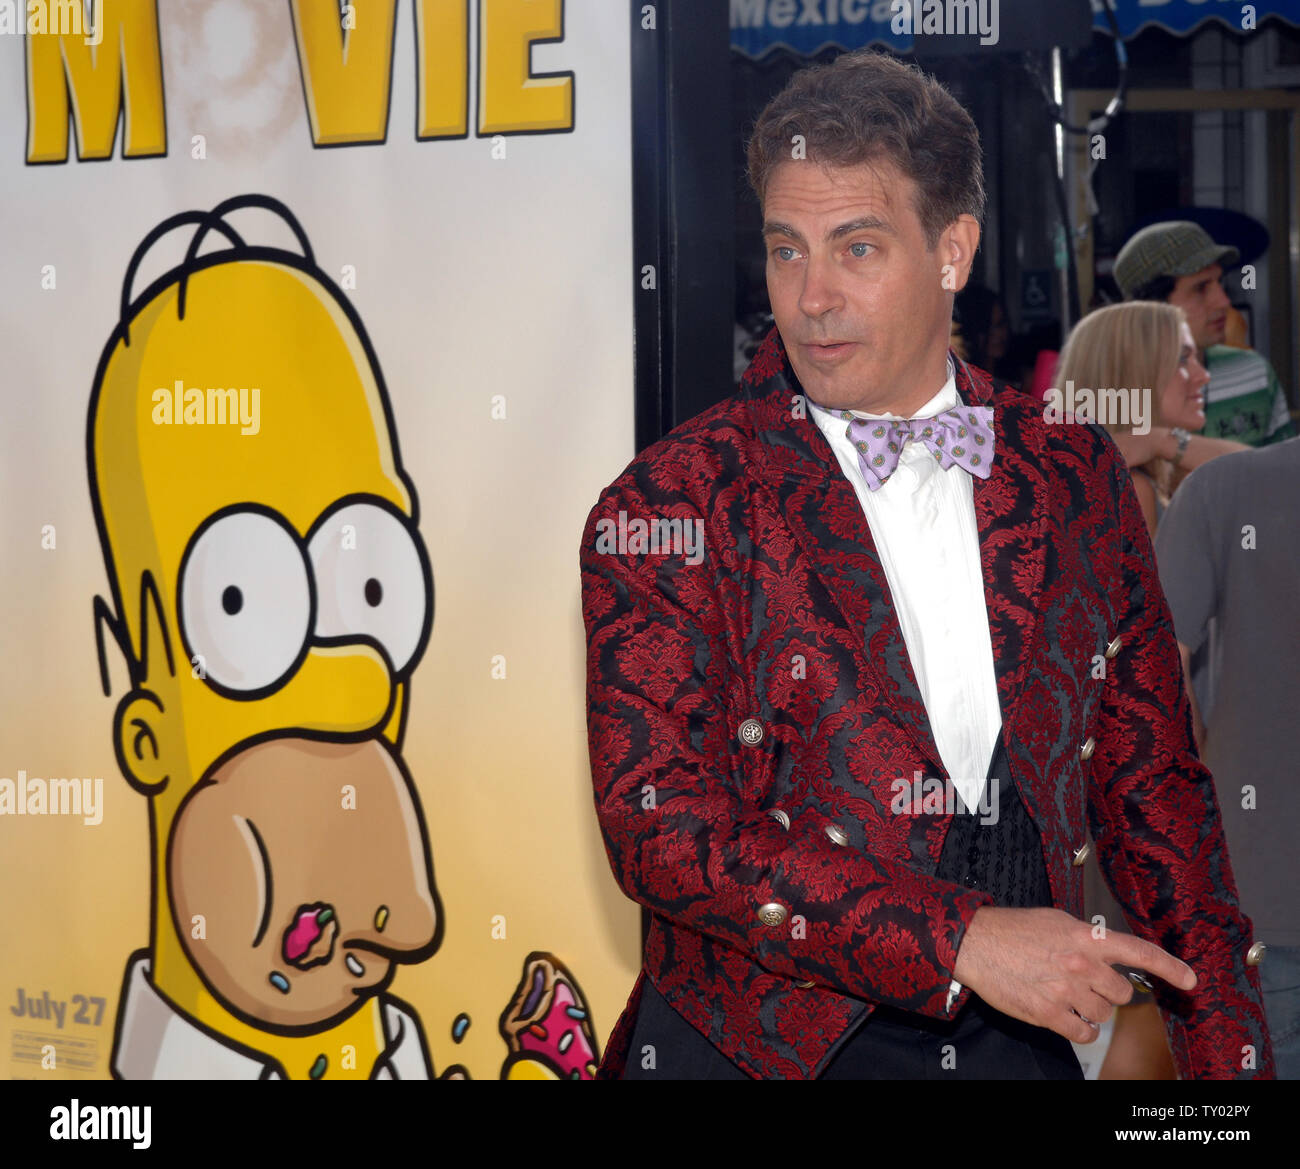 David Silverman The Director Of The Animated Motion Picture Comedy The Simpsons Movie Arrives At The Premiere Of The Film In The Westwood Section Of Los Angeles On July 24 2007 Upi